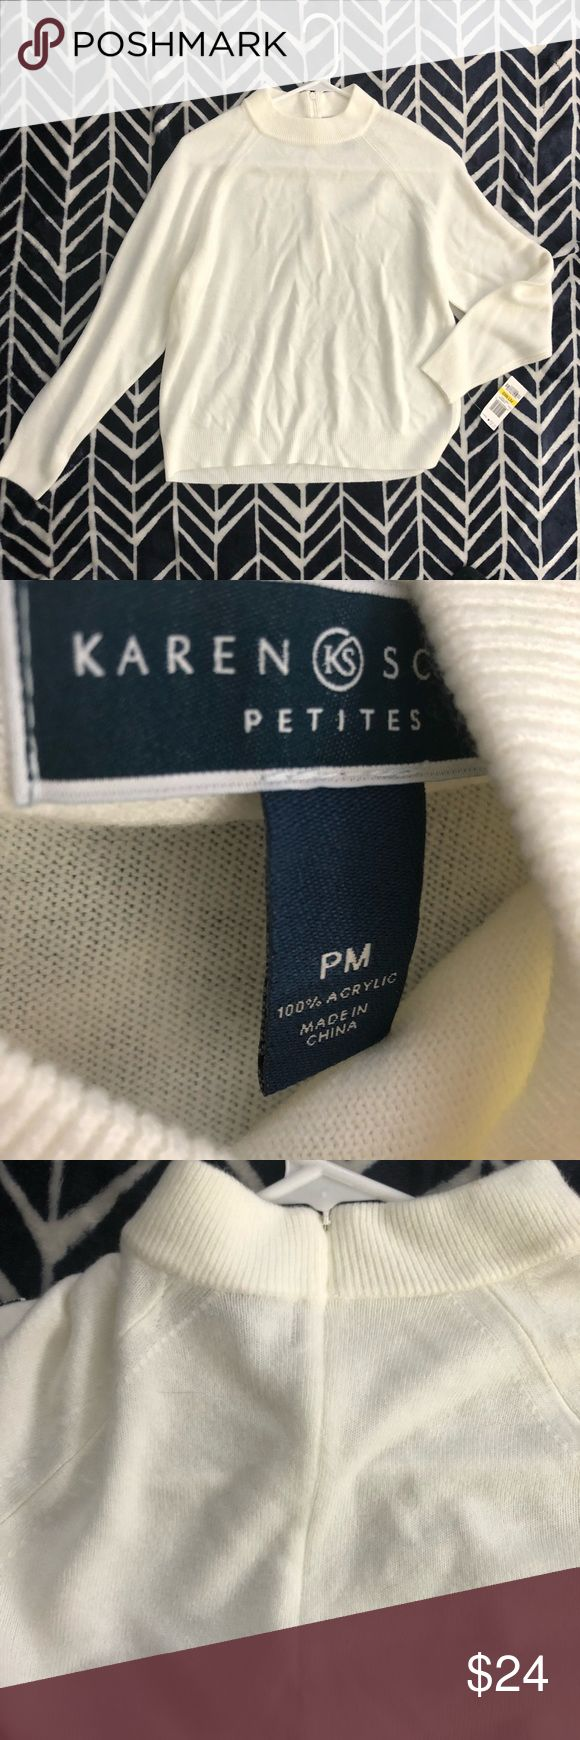 """White Karen Scott sweater Woman's size petite medium white Karen Scott sweater. Zips up in back. New with tag. The chest measures 20"""" flat across, the underarm sleeve length is 16"""" and this is 21"""" long from the tag. Karen Scott Sweaters"""